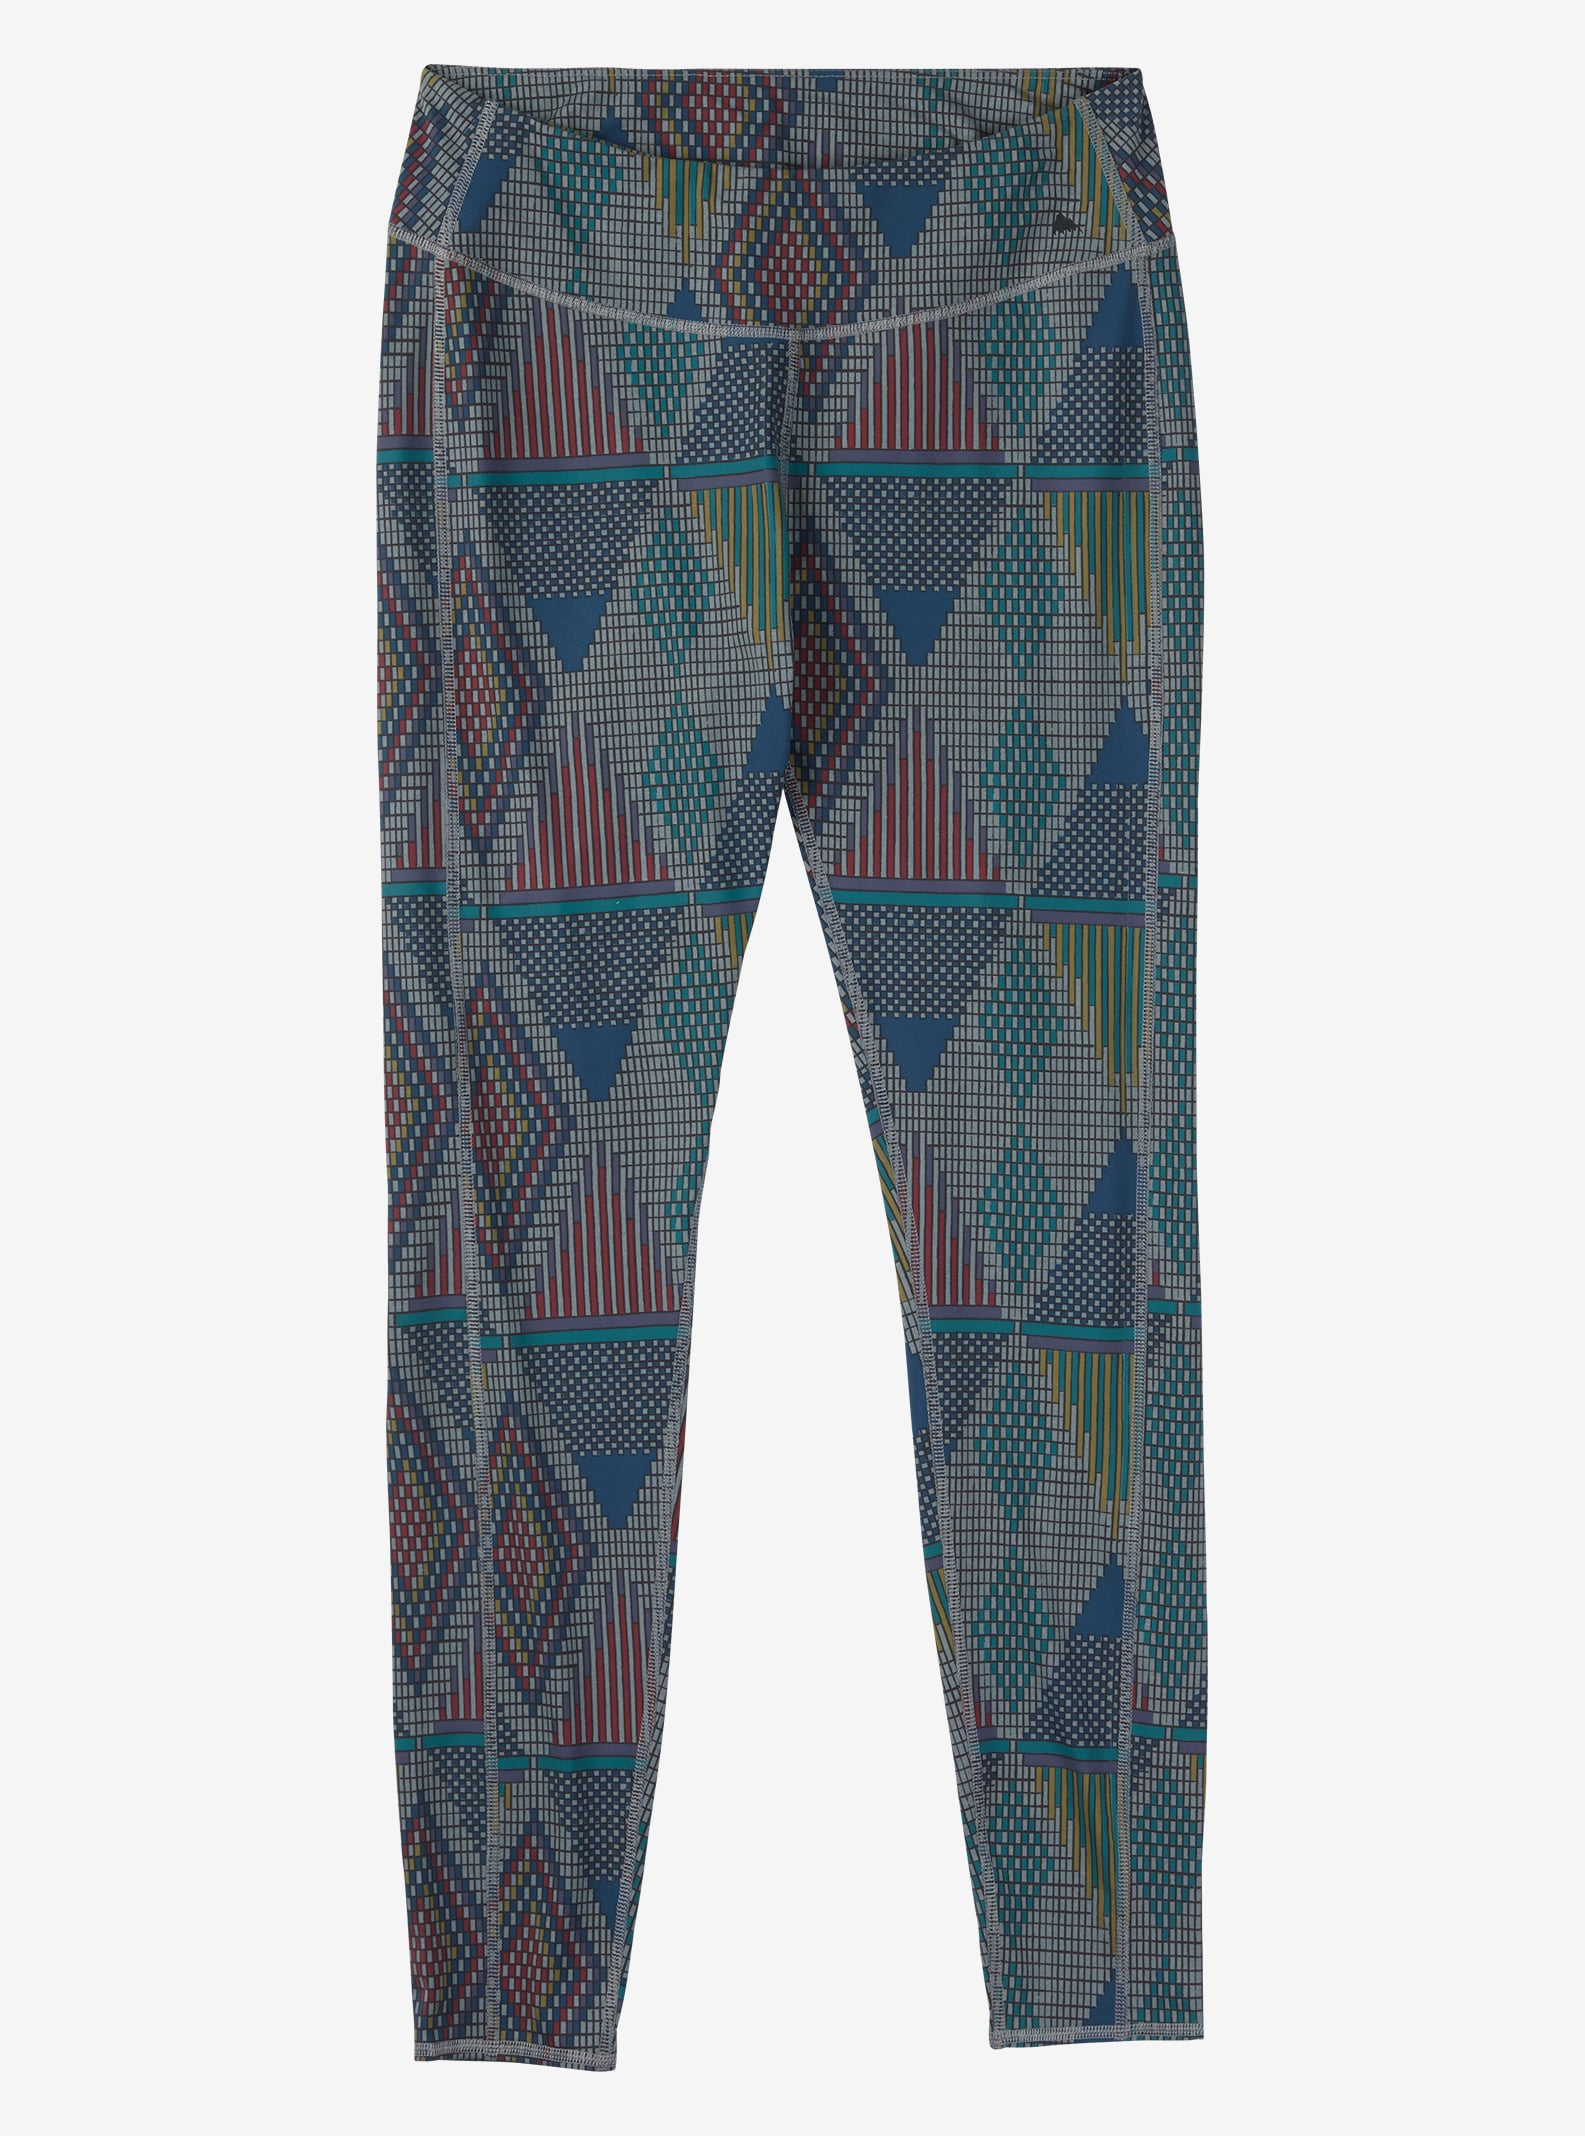 Burton Plasma Leggings angezeigt in Monument Heather De Geo